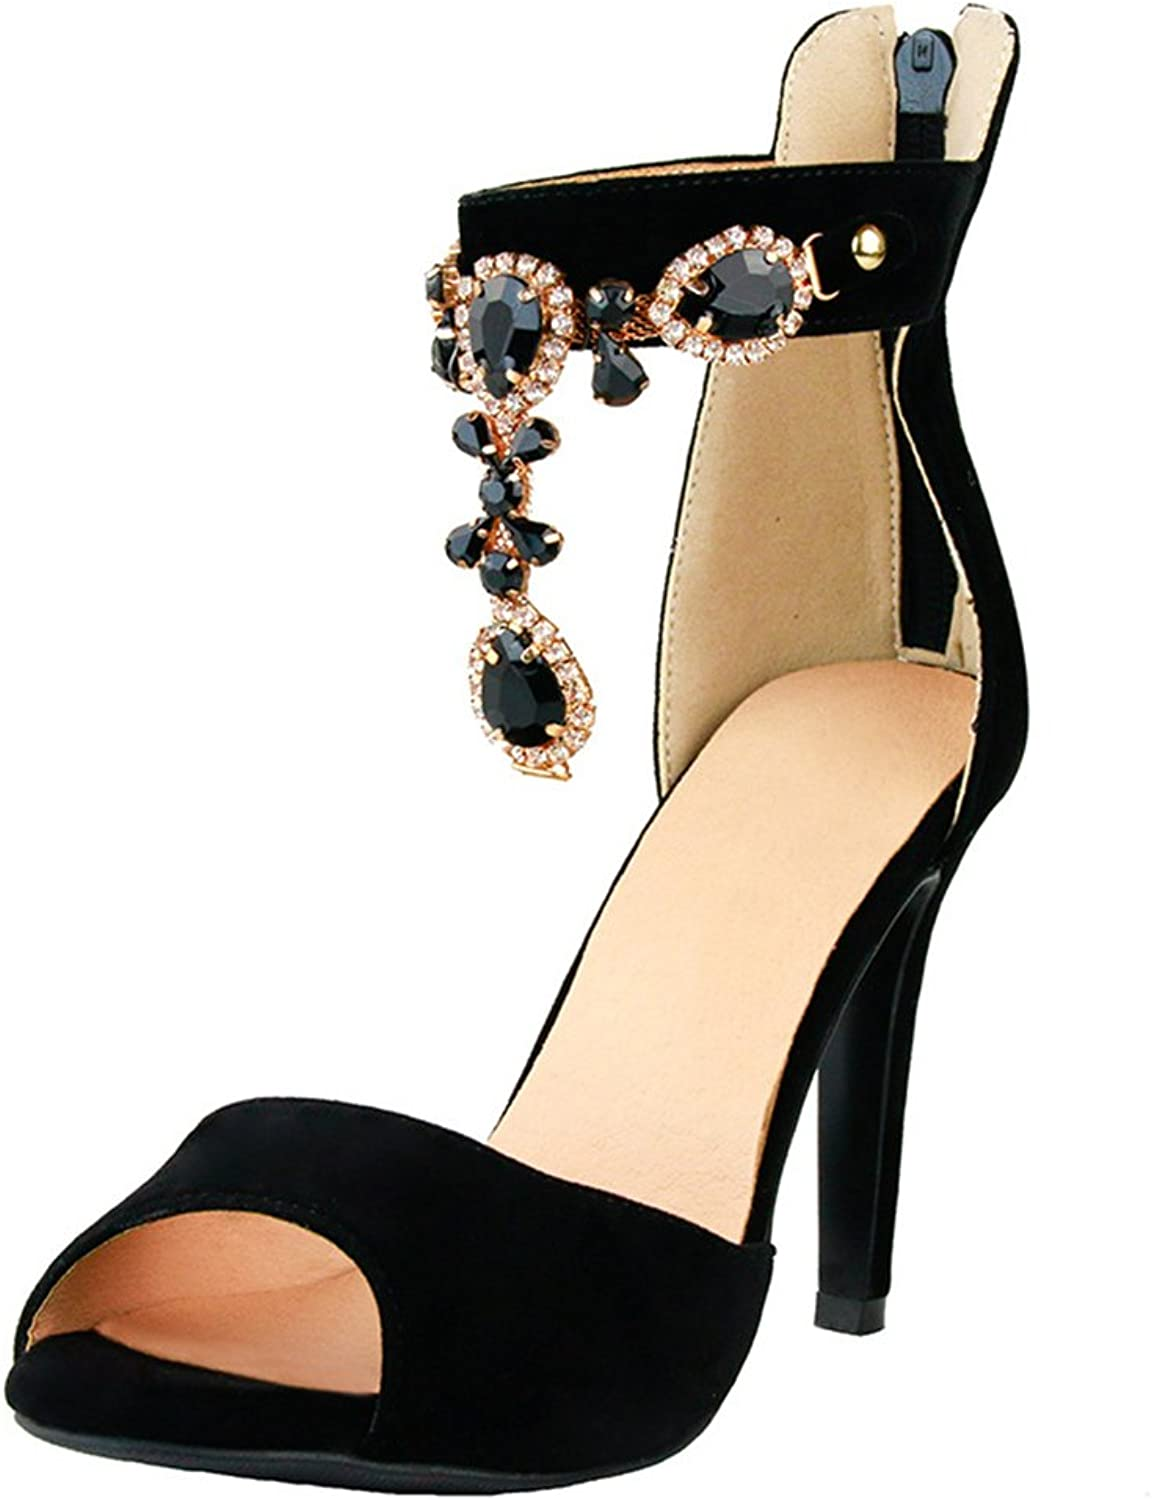 Women's Rhinestone Black Gem Fish Mouth Sandals Girls Classic Elegant Party Heels